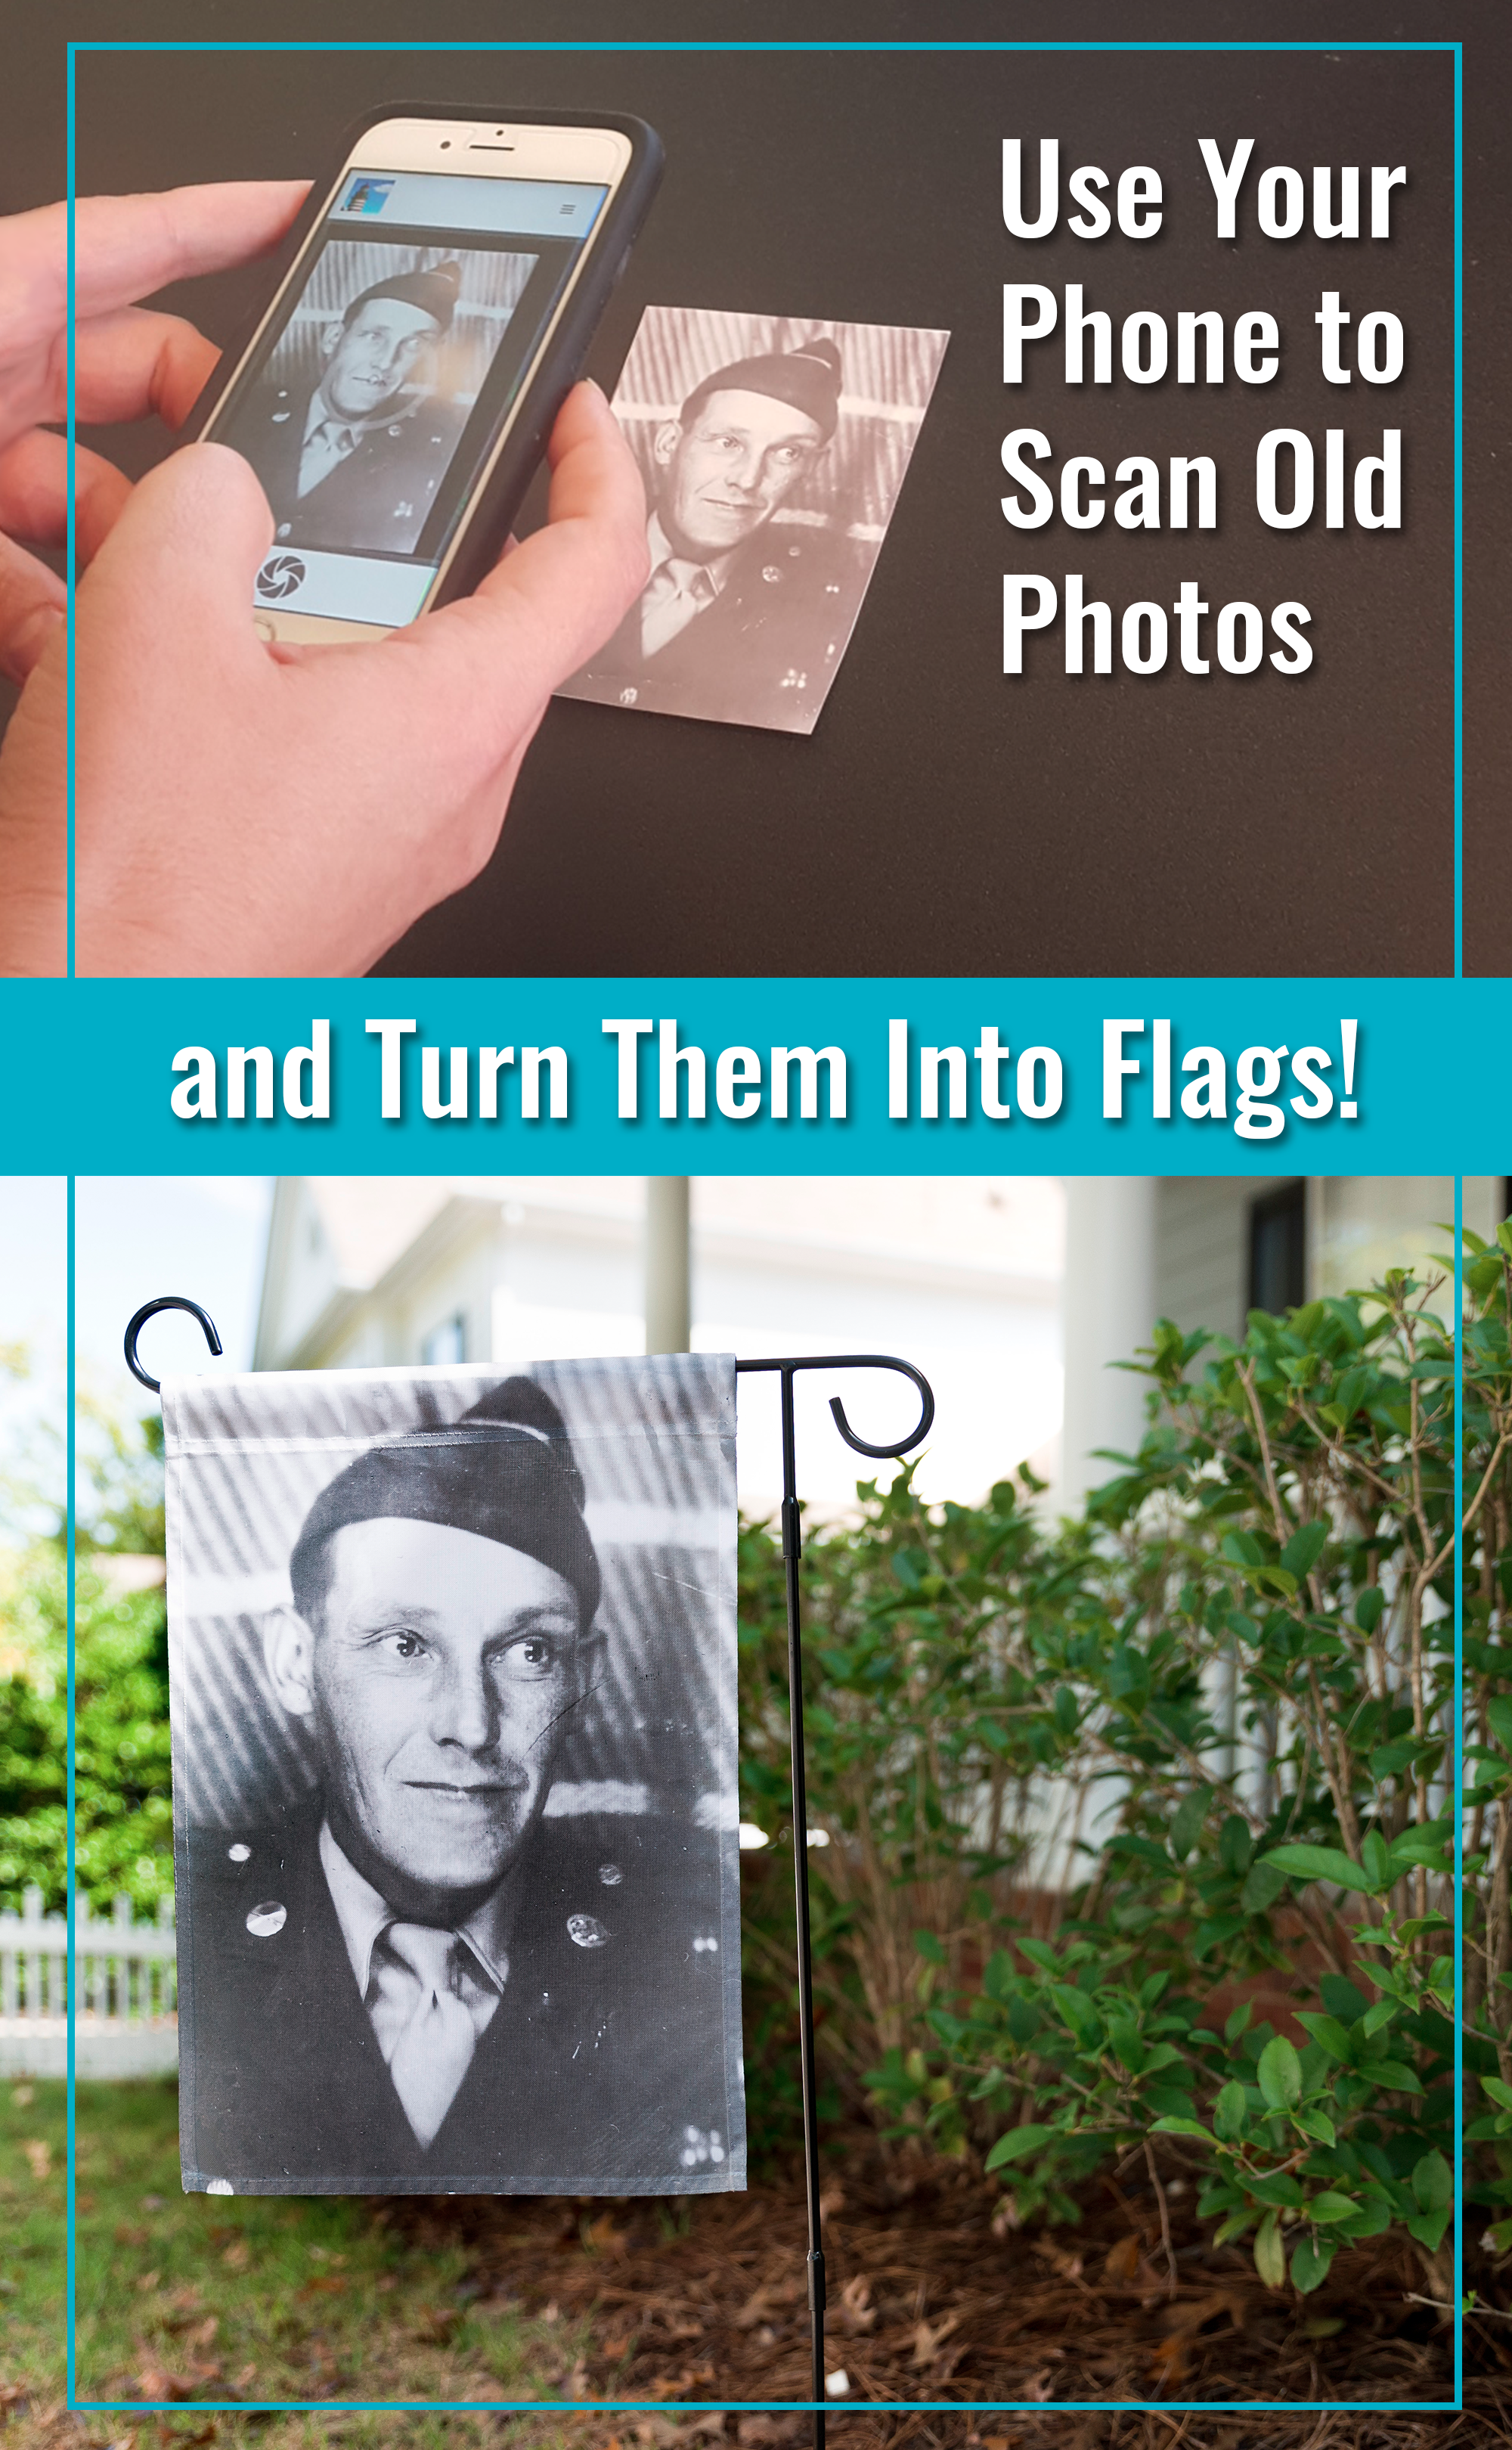 Use your phone to scan old photos and turn photos into flags